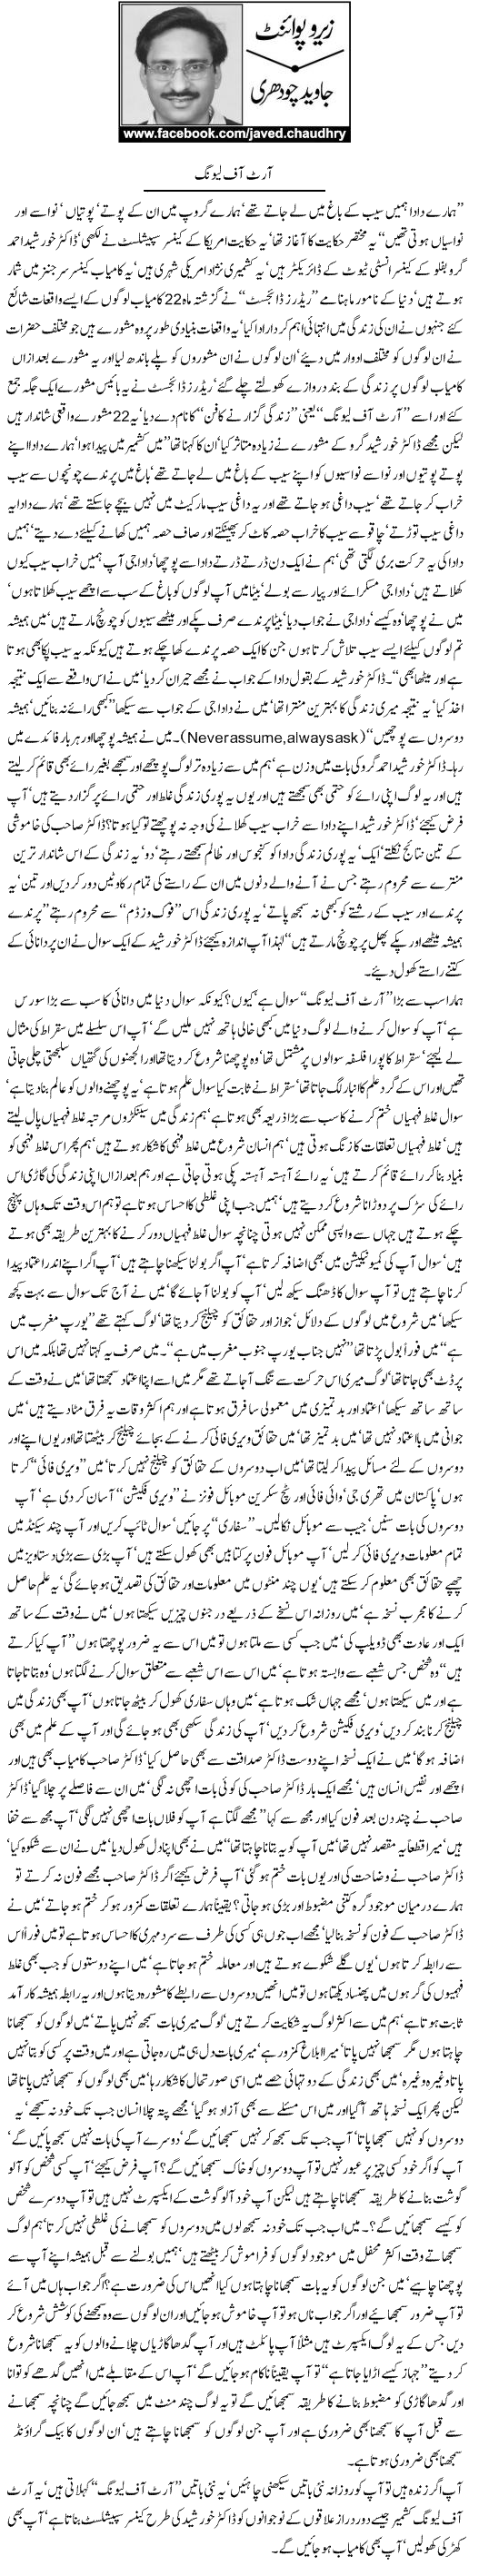 Art Of Living By Javed Chaudhry - Zero Point - Pakfunny